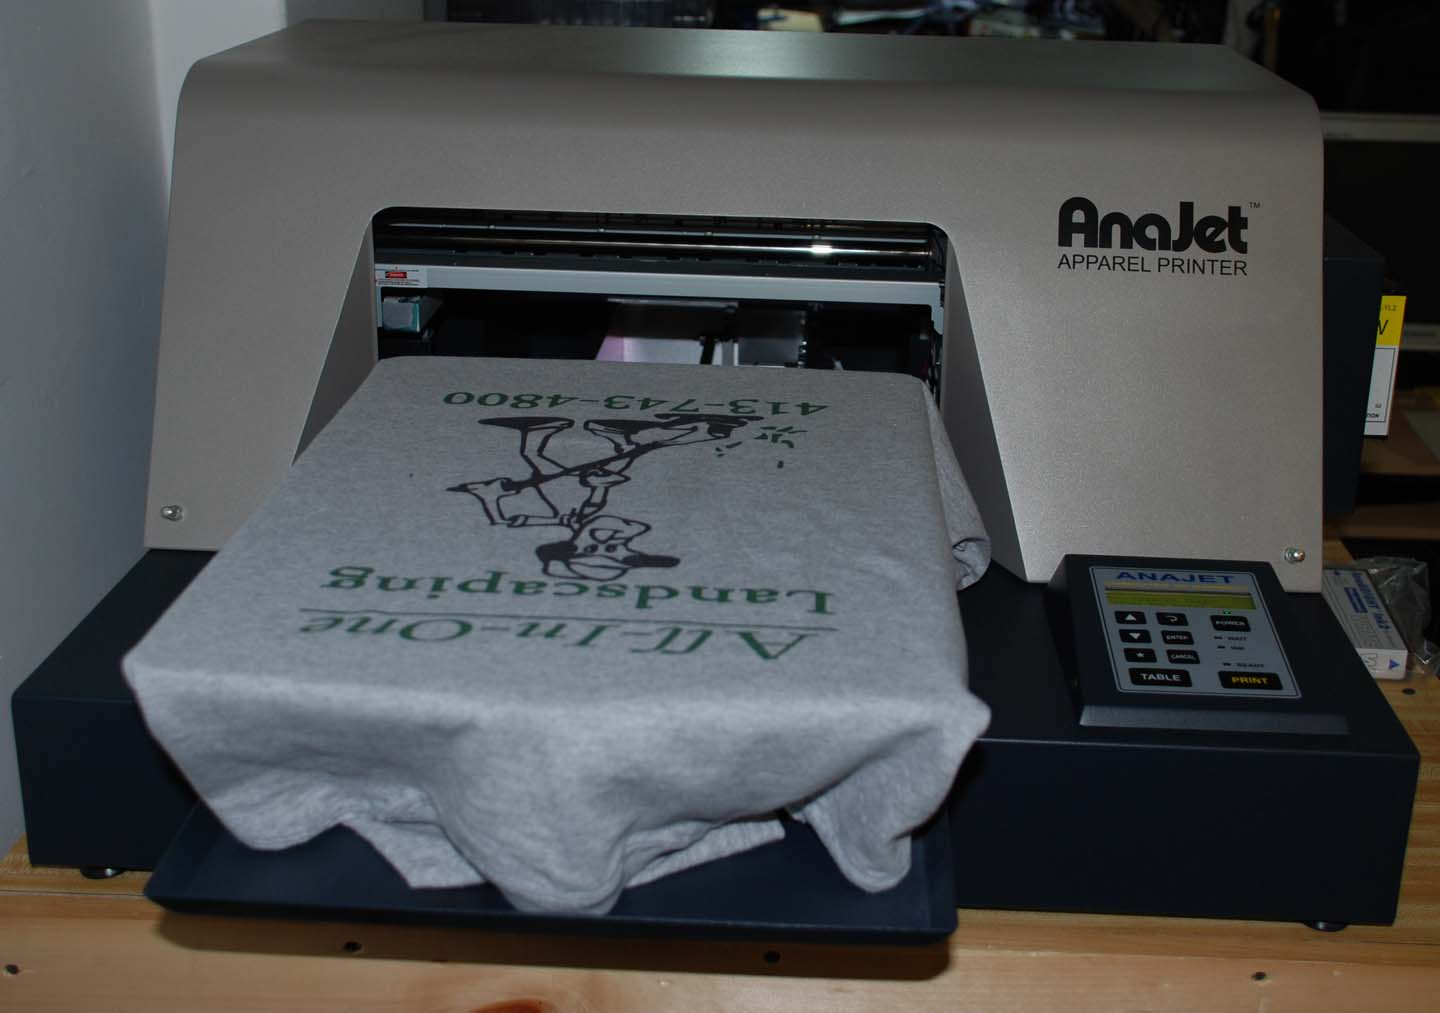 3 Month Old Anajet Printer With George Knight 16x20 Heat Press